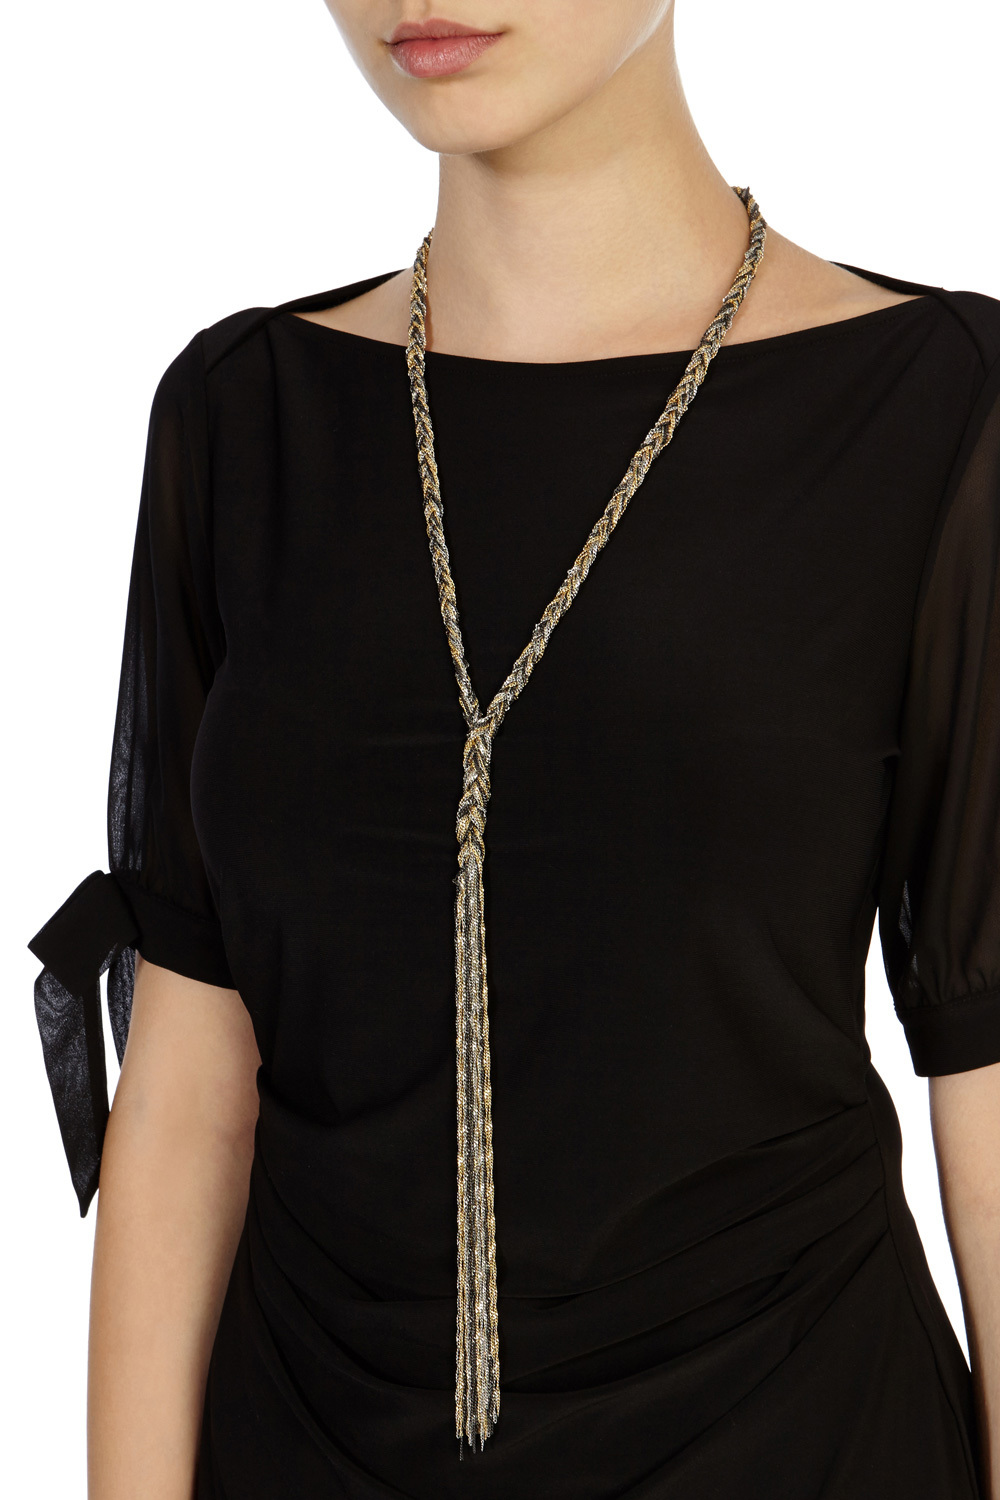 Evie Plated Longline Necklace - predominant colour: gold; occasions: evening, occasion; style: pendant; length: long; size: large/oversized; material: chain/metal; finish: metallic; season: s/s 2016; wardrobe: event